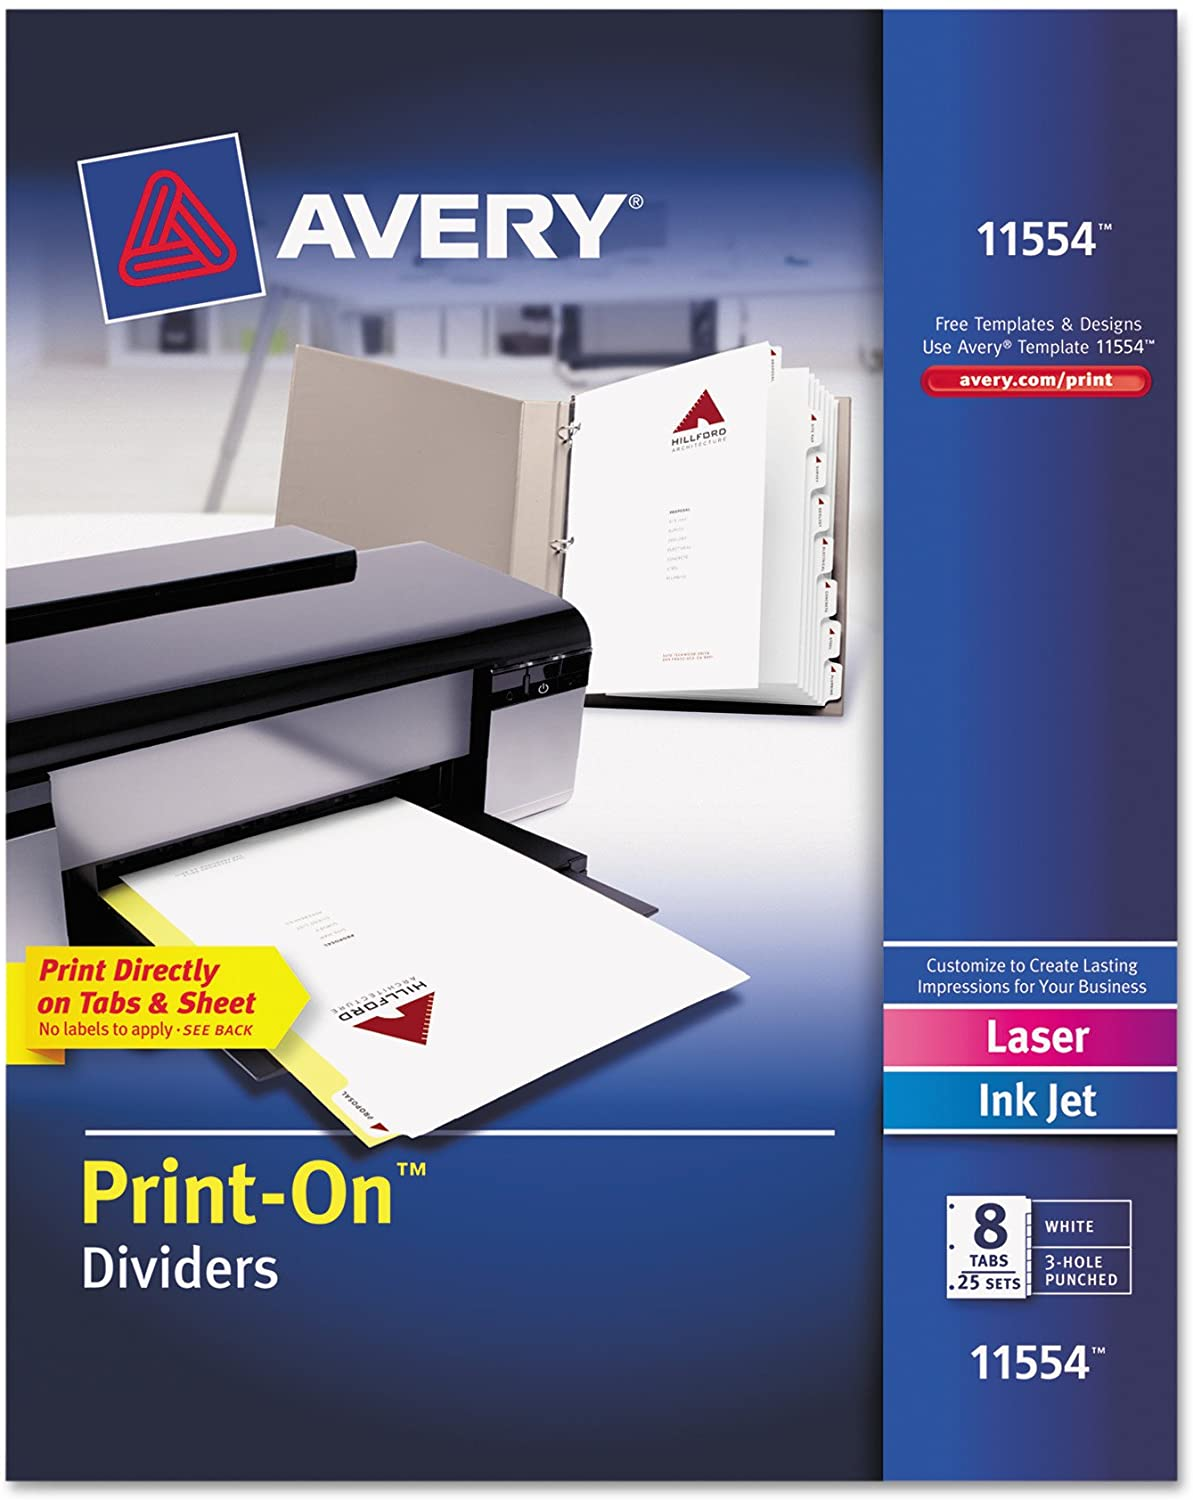 Avery 8-Tab Print-On Binder Dividers, White Tabs, 25 Sets (11554)